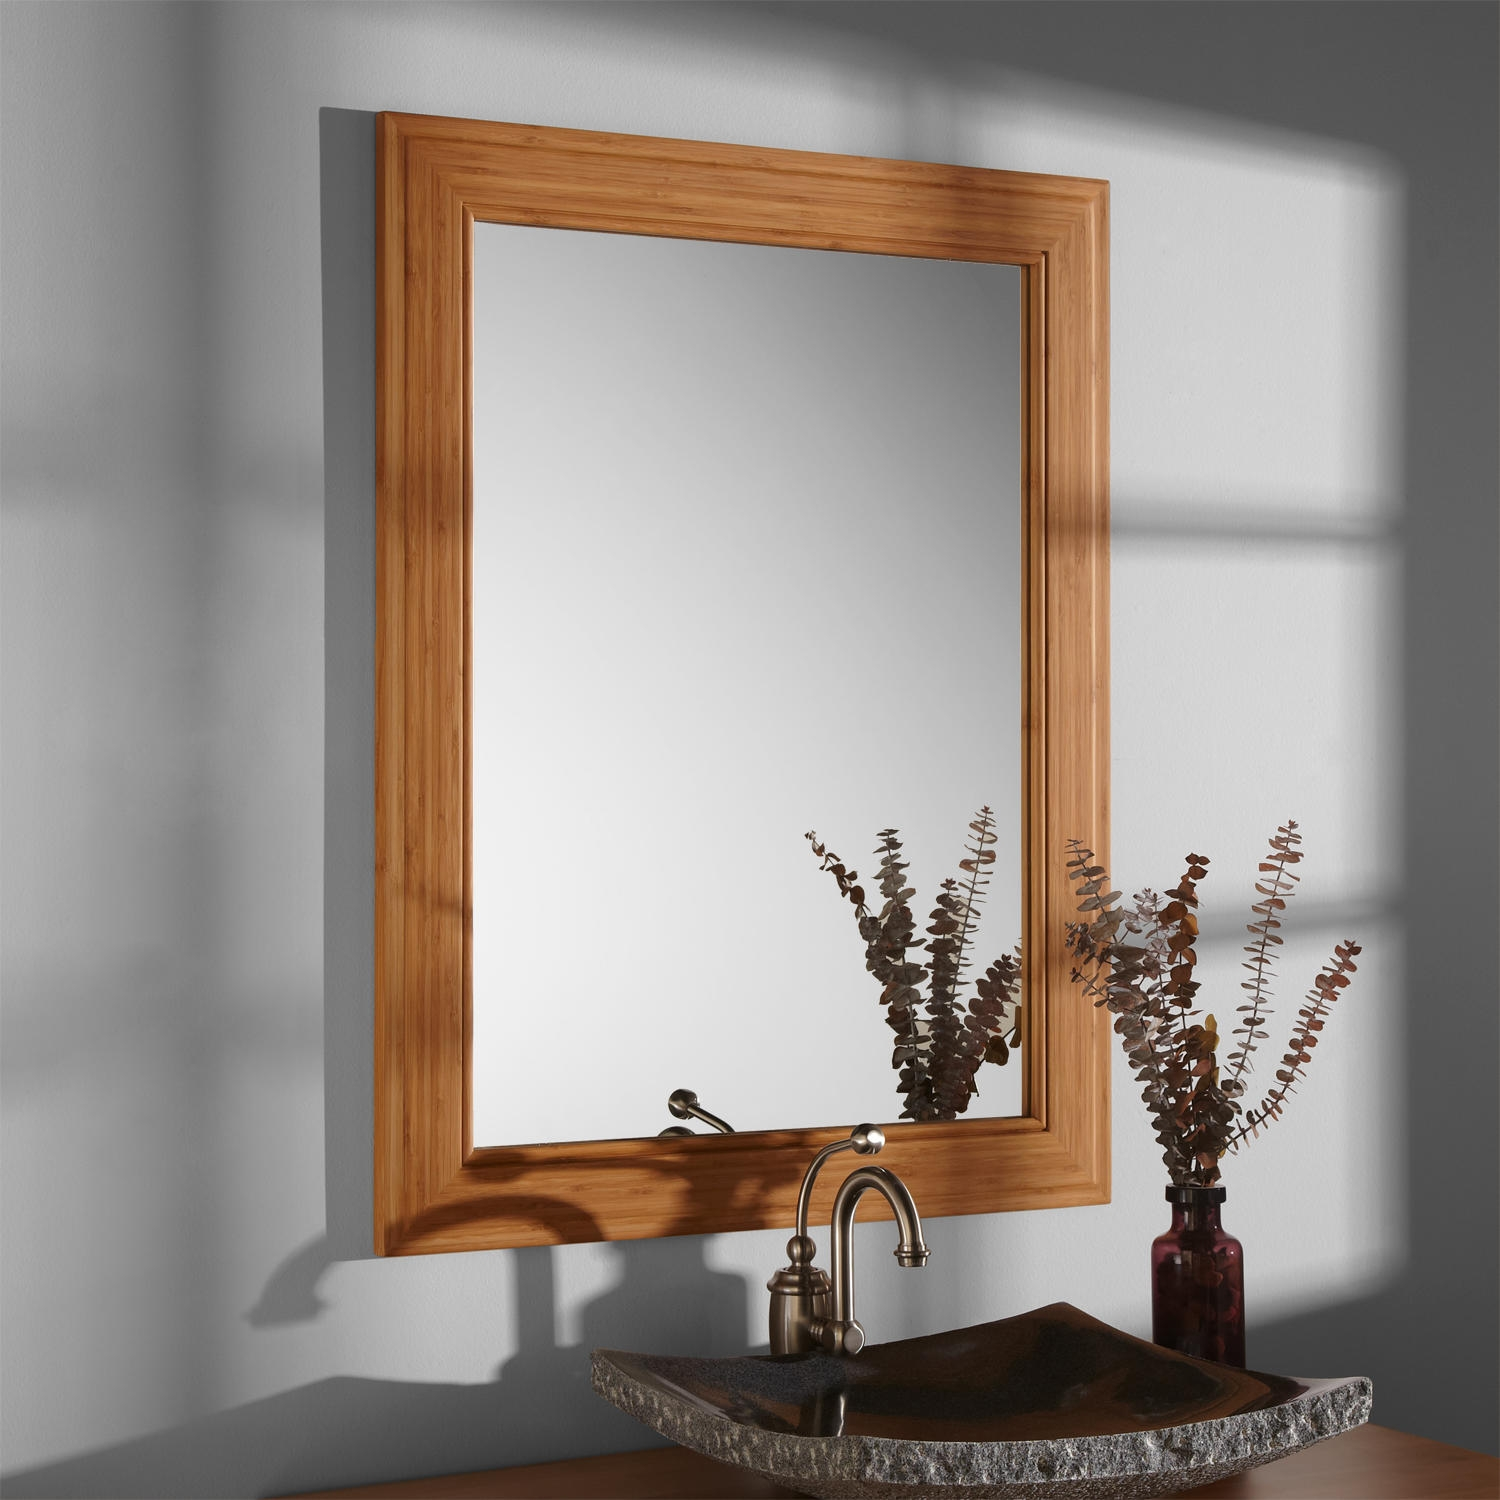 Bamboo Framed Bathroom Mirror